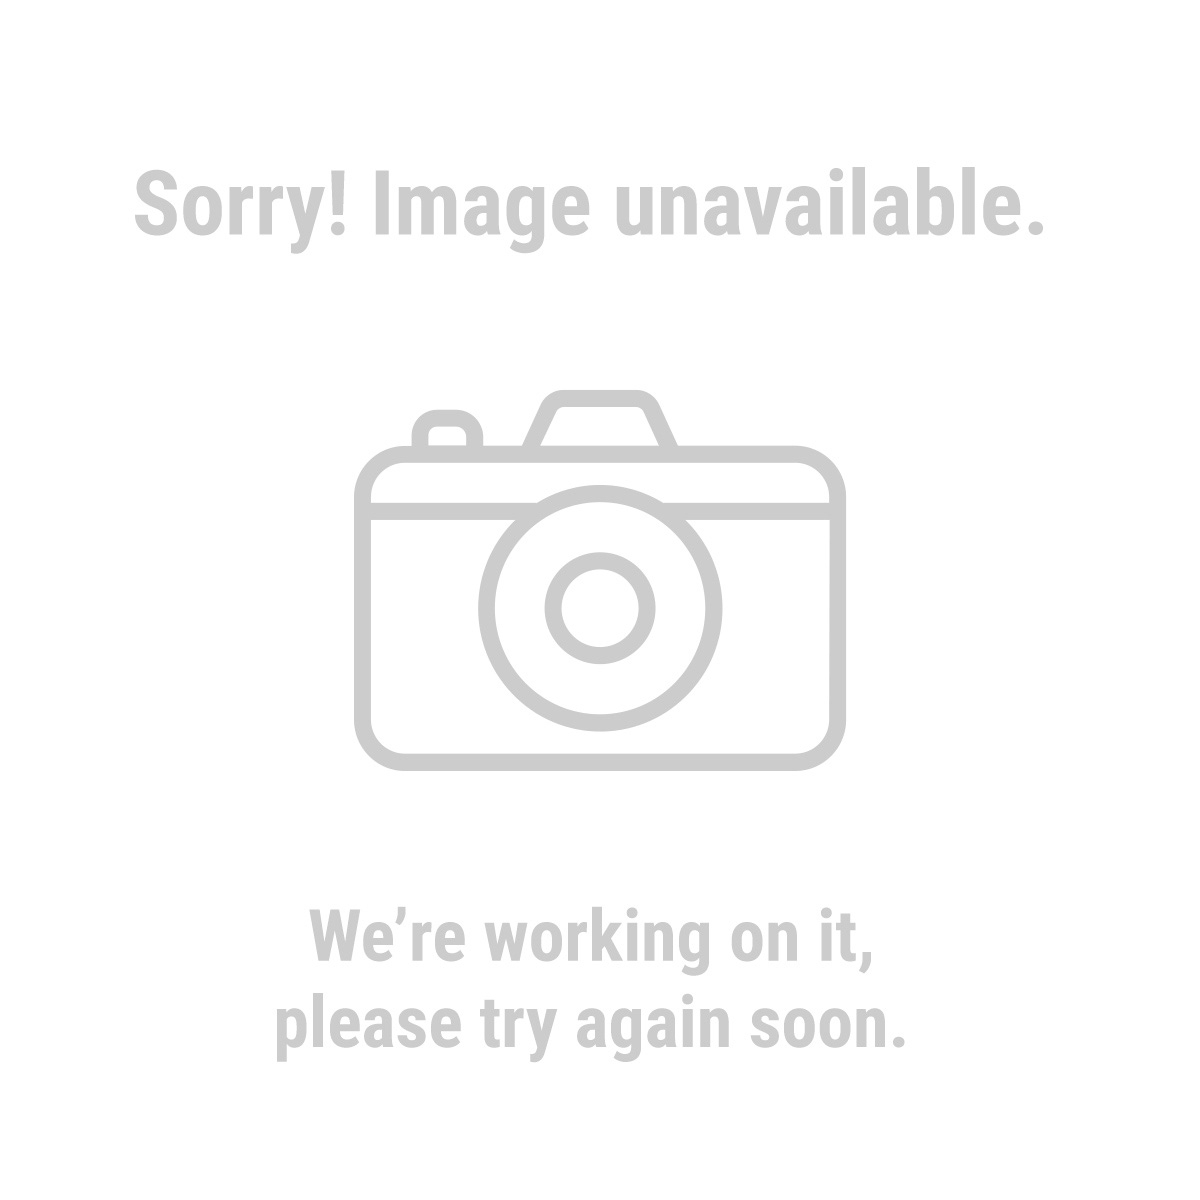 HFT 61908 100 ft. x 16 Gauge Outdoor Extension Cord